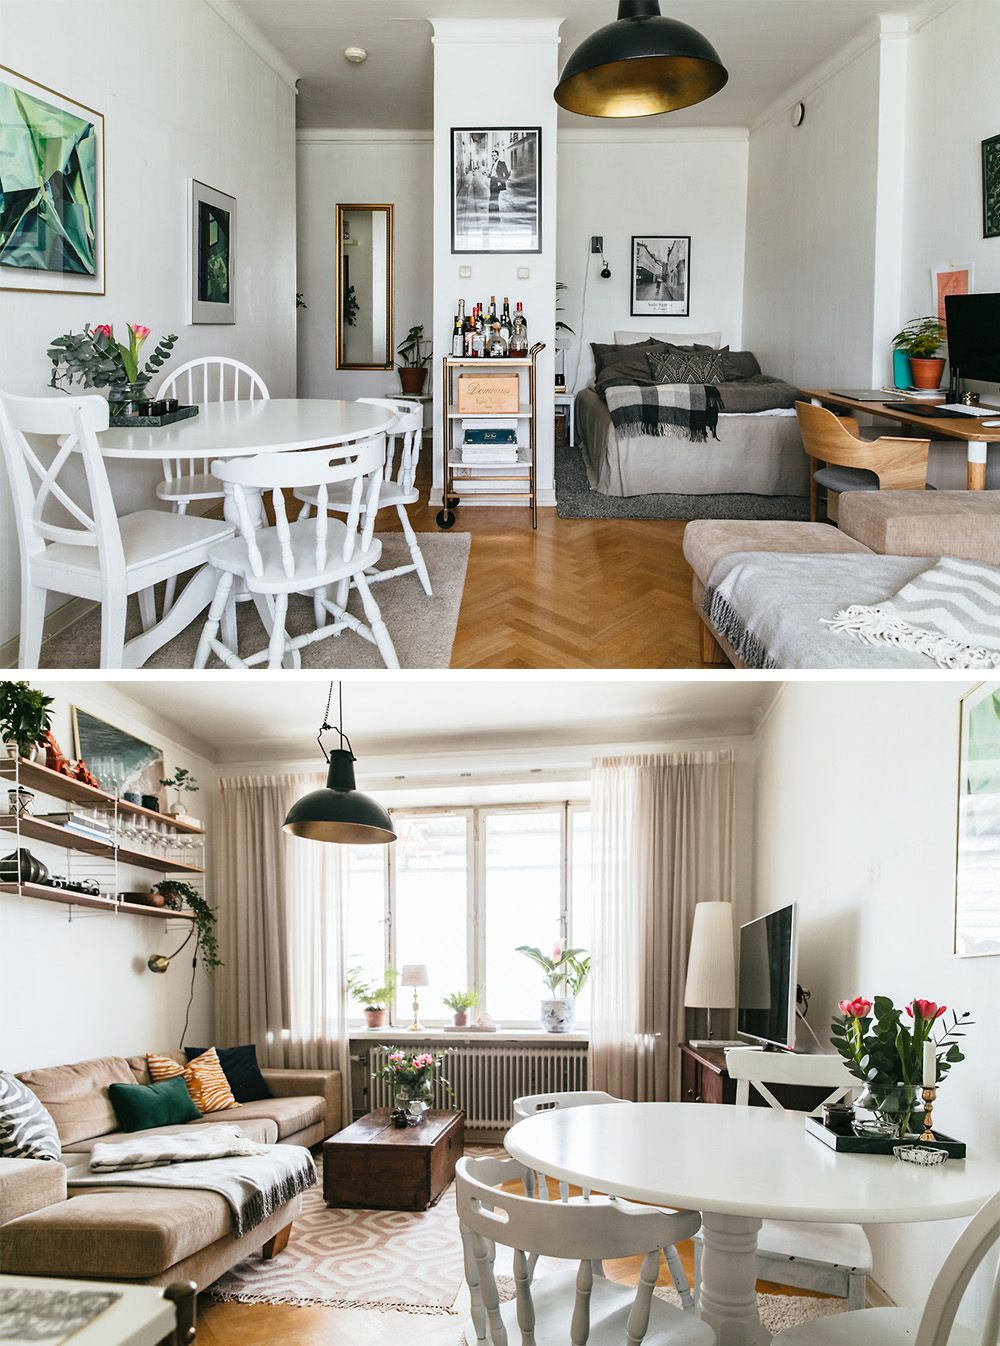 Bedroom Living Room And Dining In One 2019